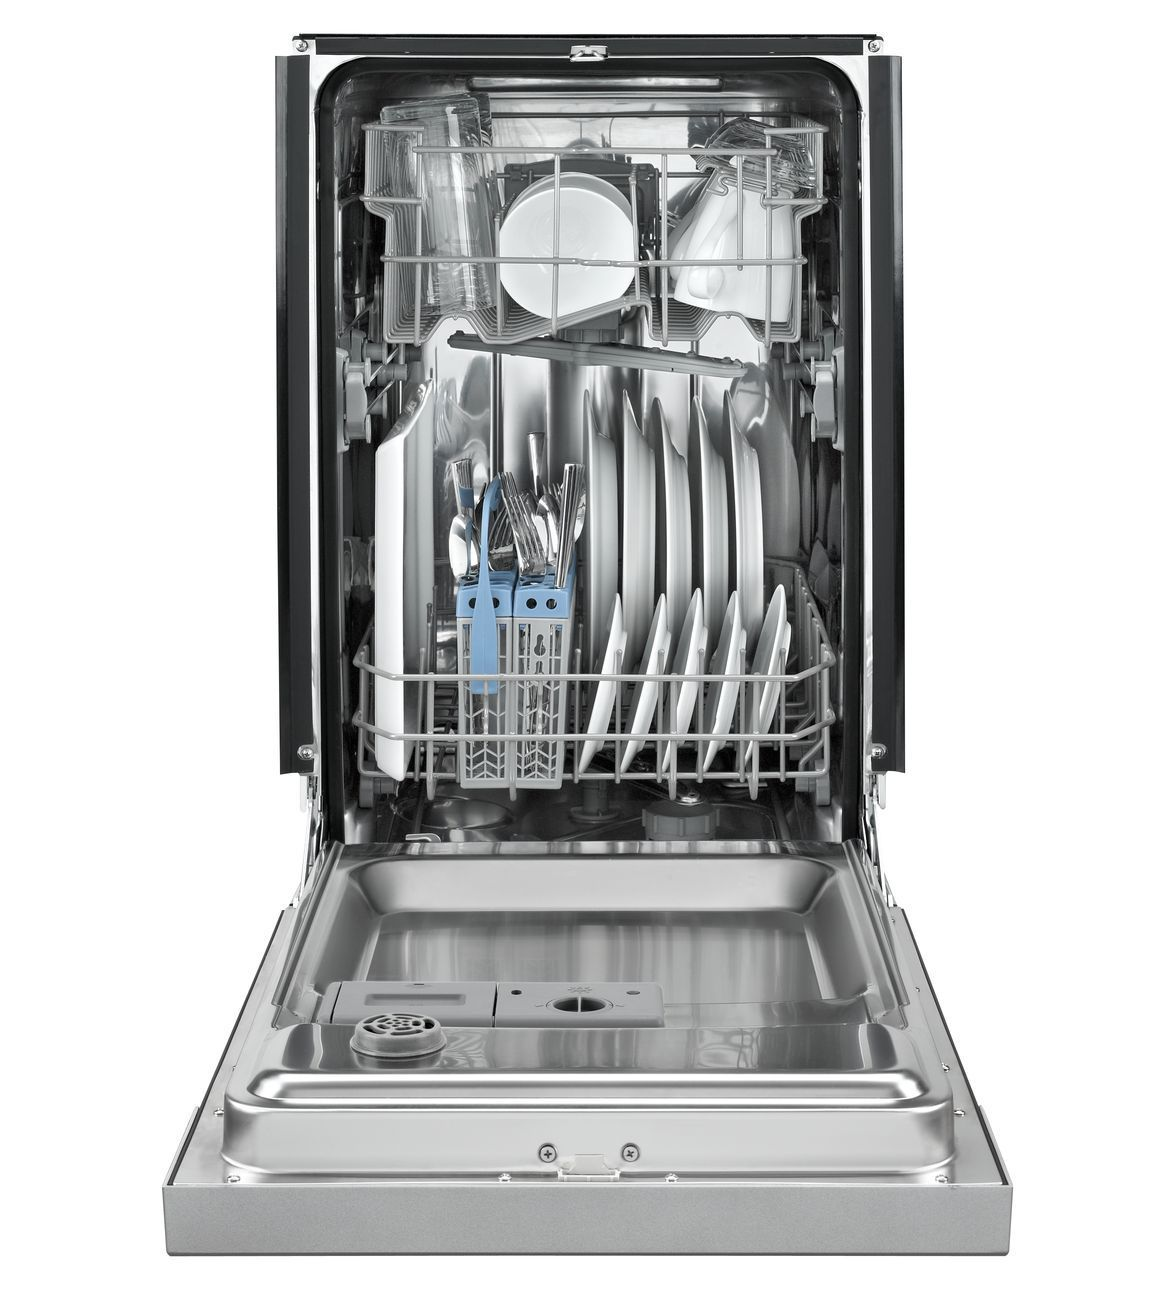 Front Control Dishwasher In Black With Stainless Steel Tub